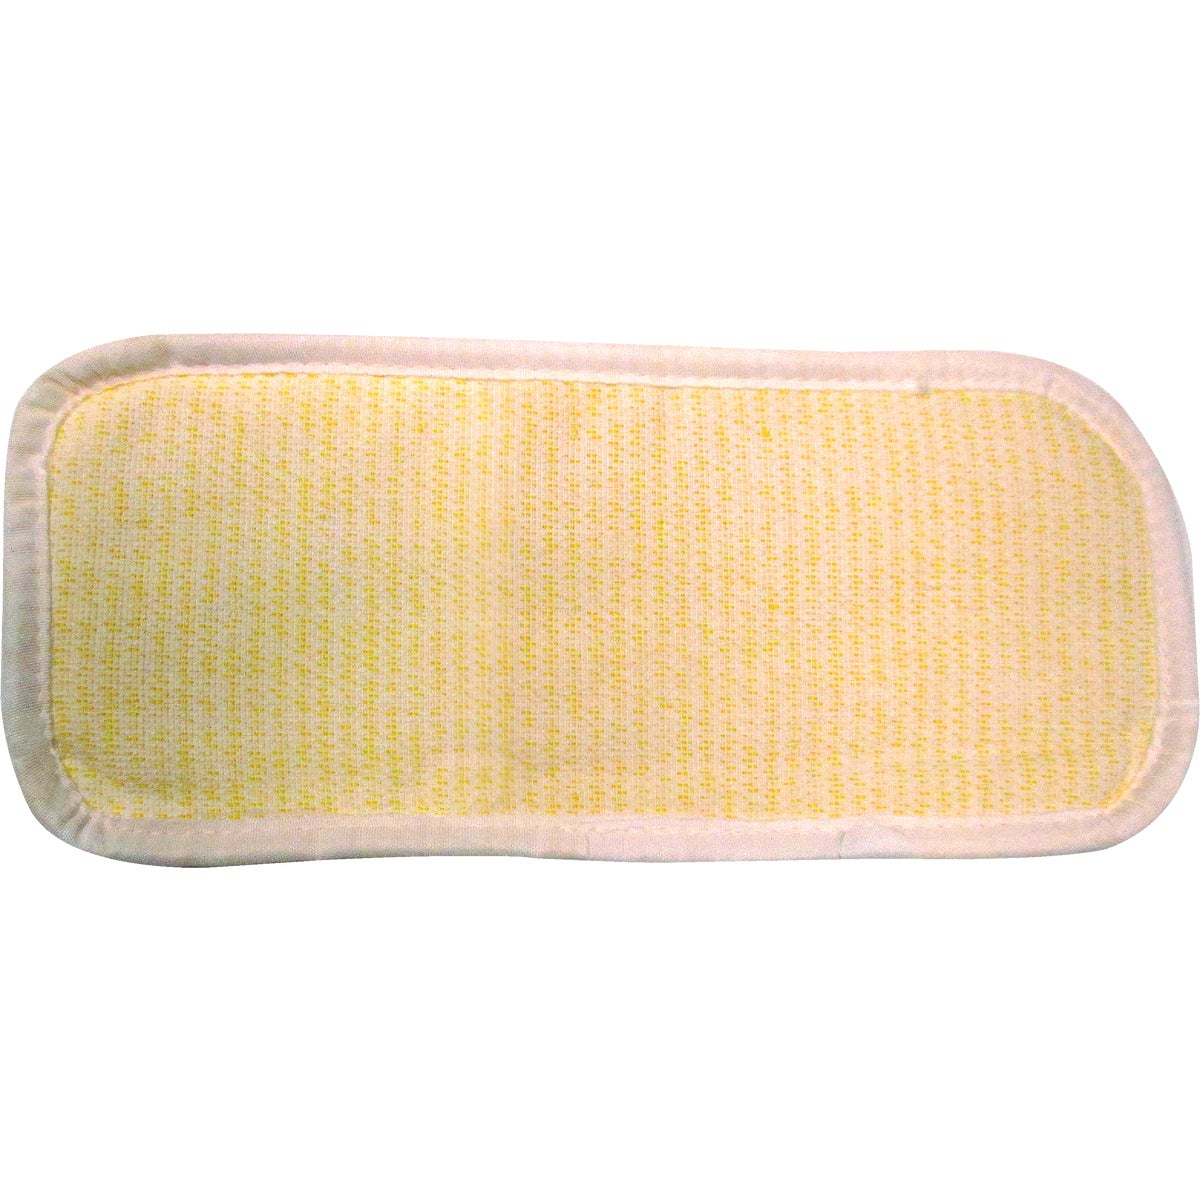 FINISH APPLICATOR PAD - 33410 by Ettore Products Co